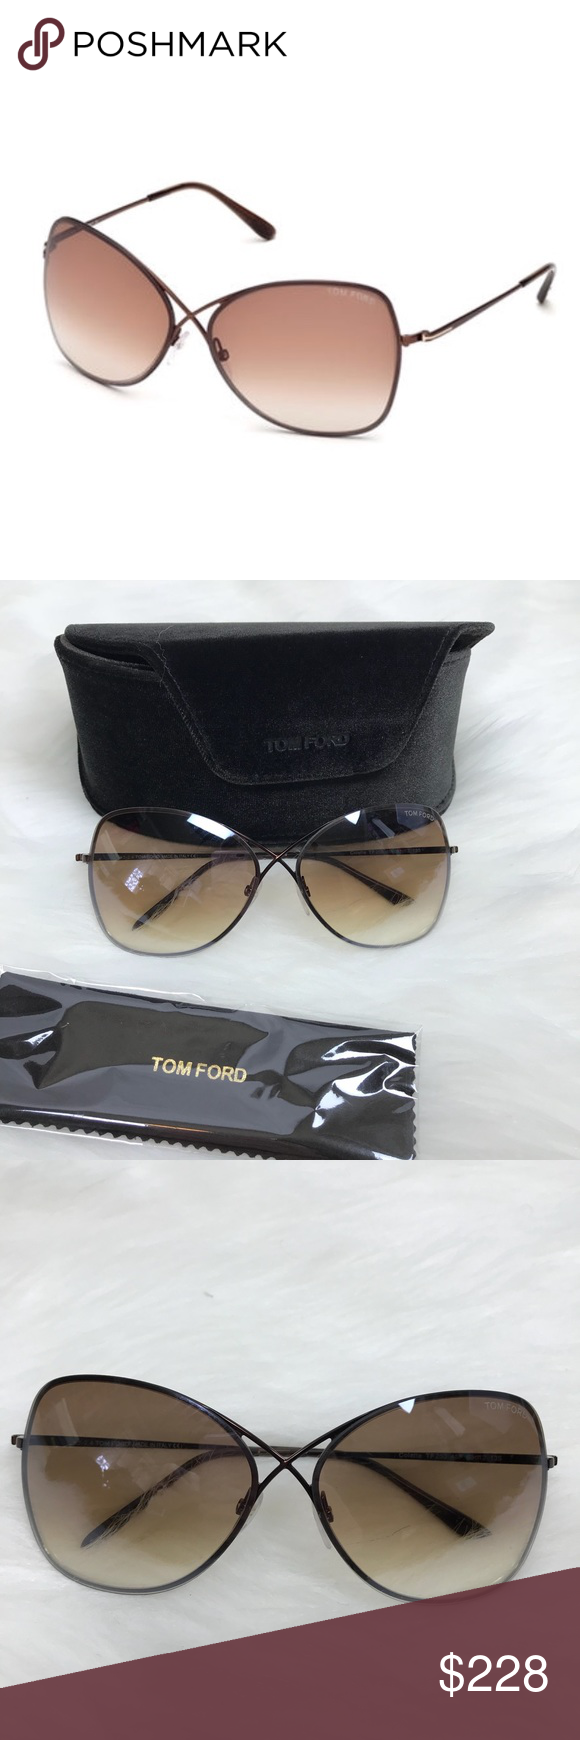 cd83dd89f4c Tom Ford Colette Metal-Frame Butterfly Sunglasses Tom Ford Colette  Metal-Frame Butterfly Sunglasses